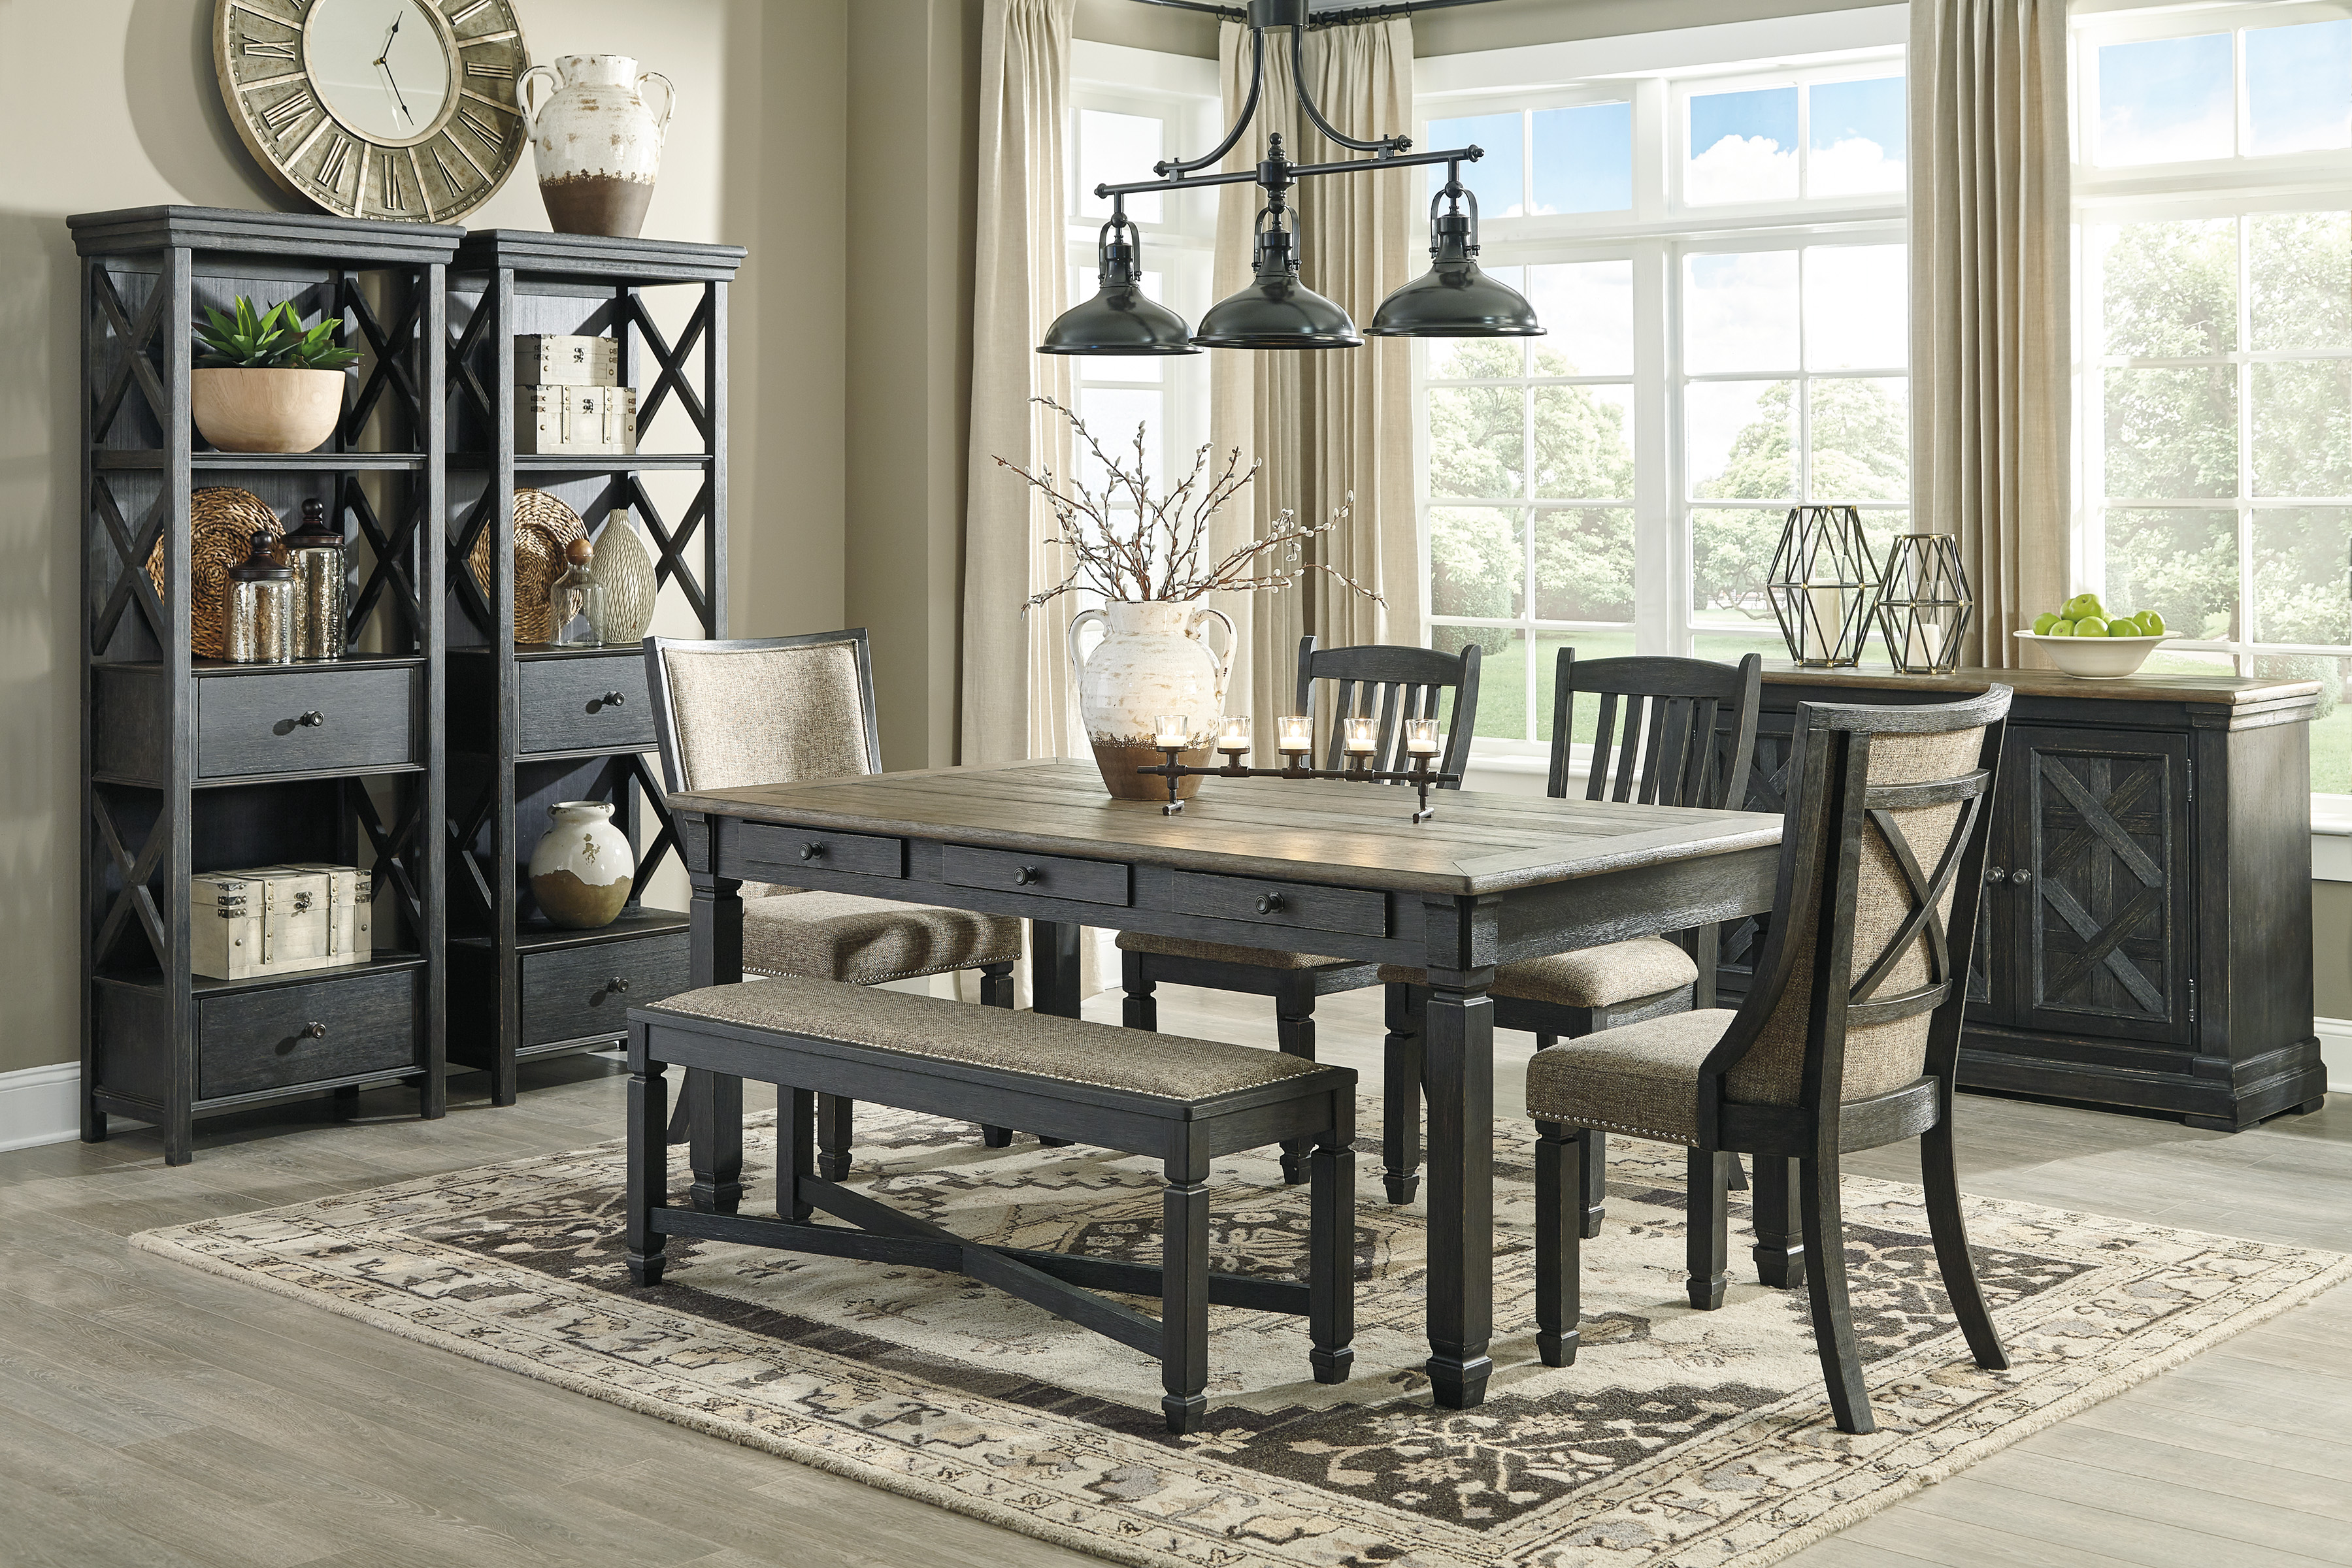 Dining Room Sets All American Mattress Furniture